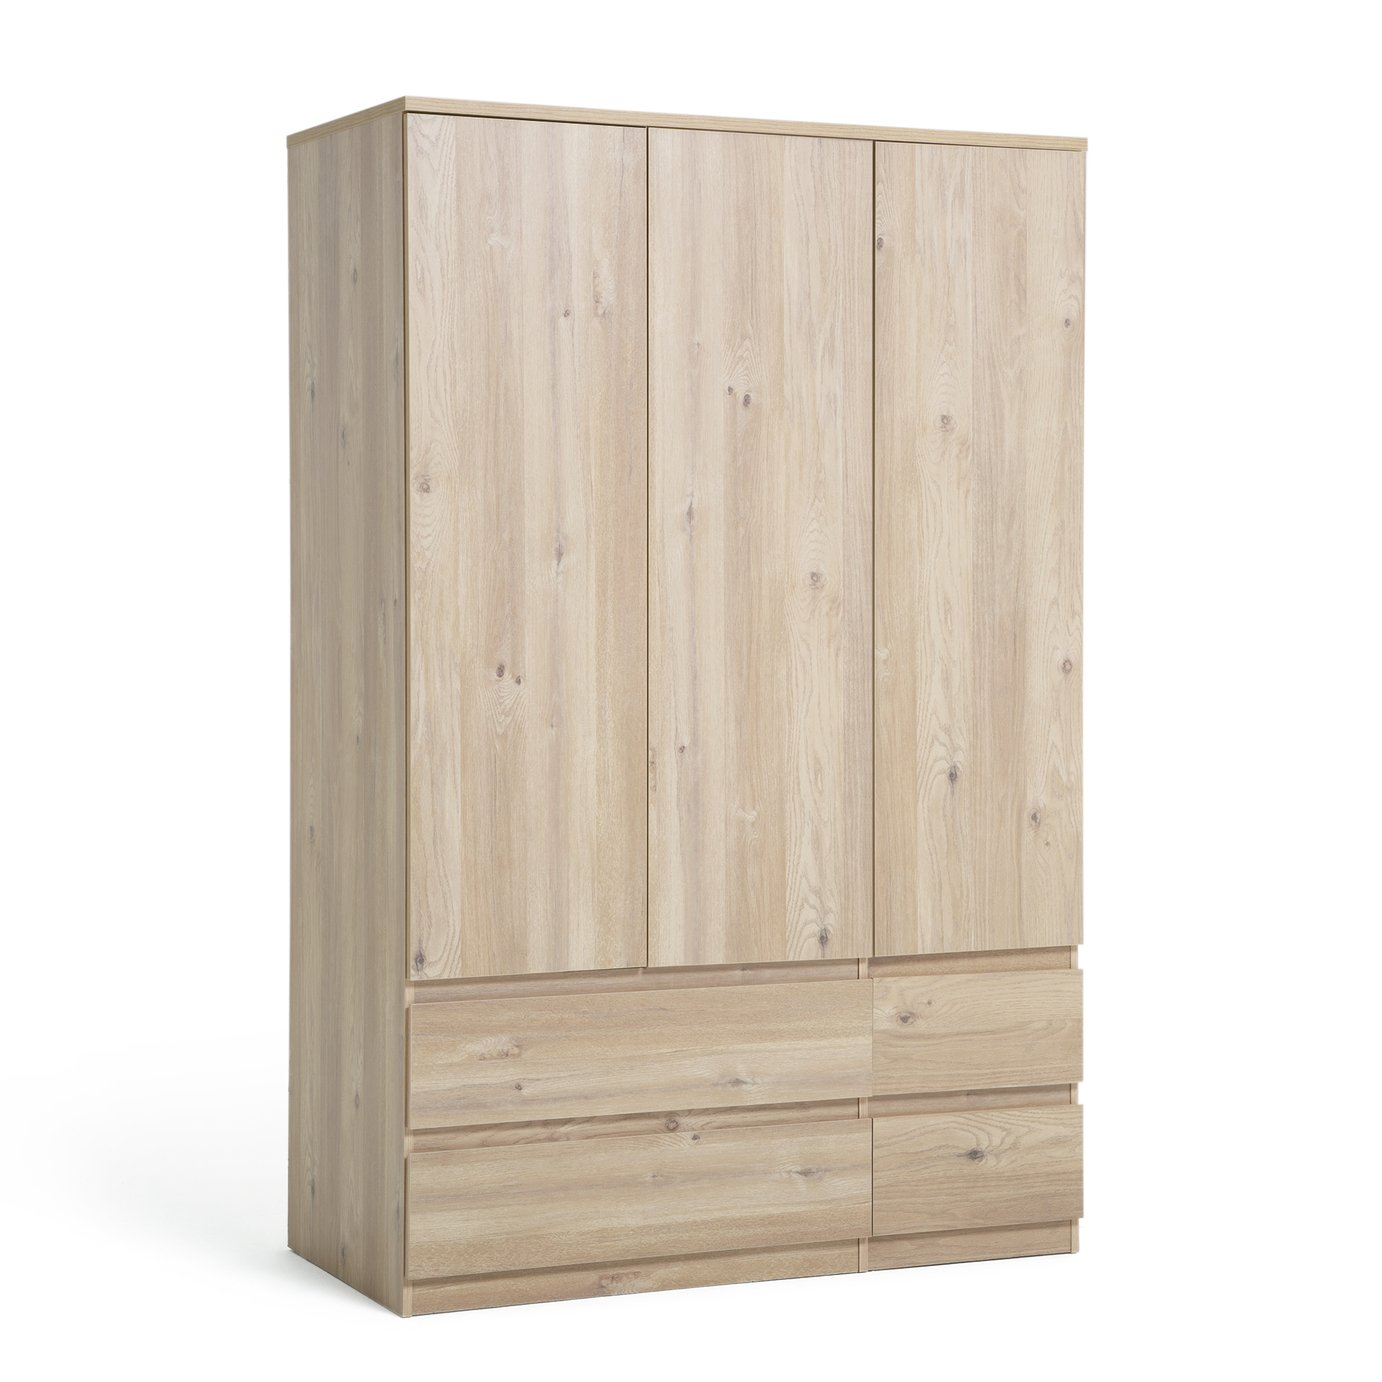 Argos Home Jenson 3 Door 4 Drawer Wardrobe - Oak Effect